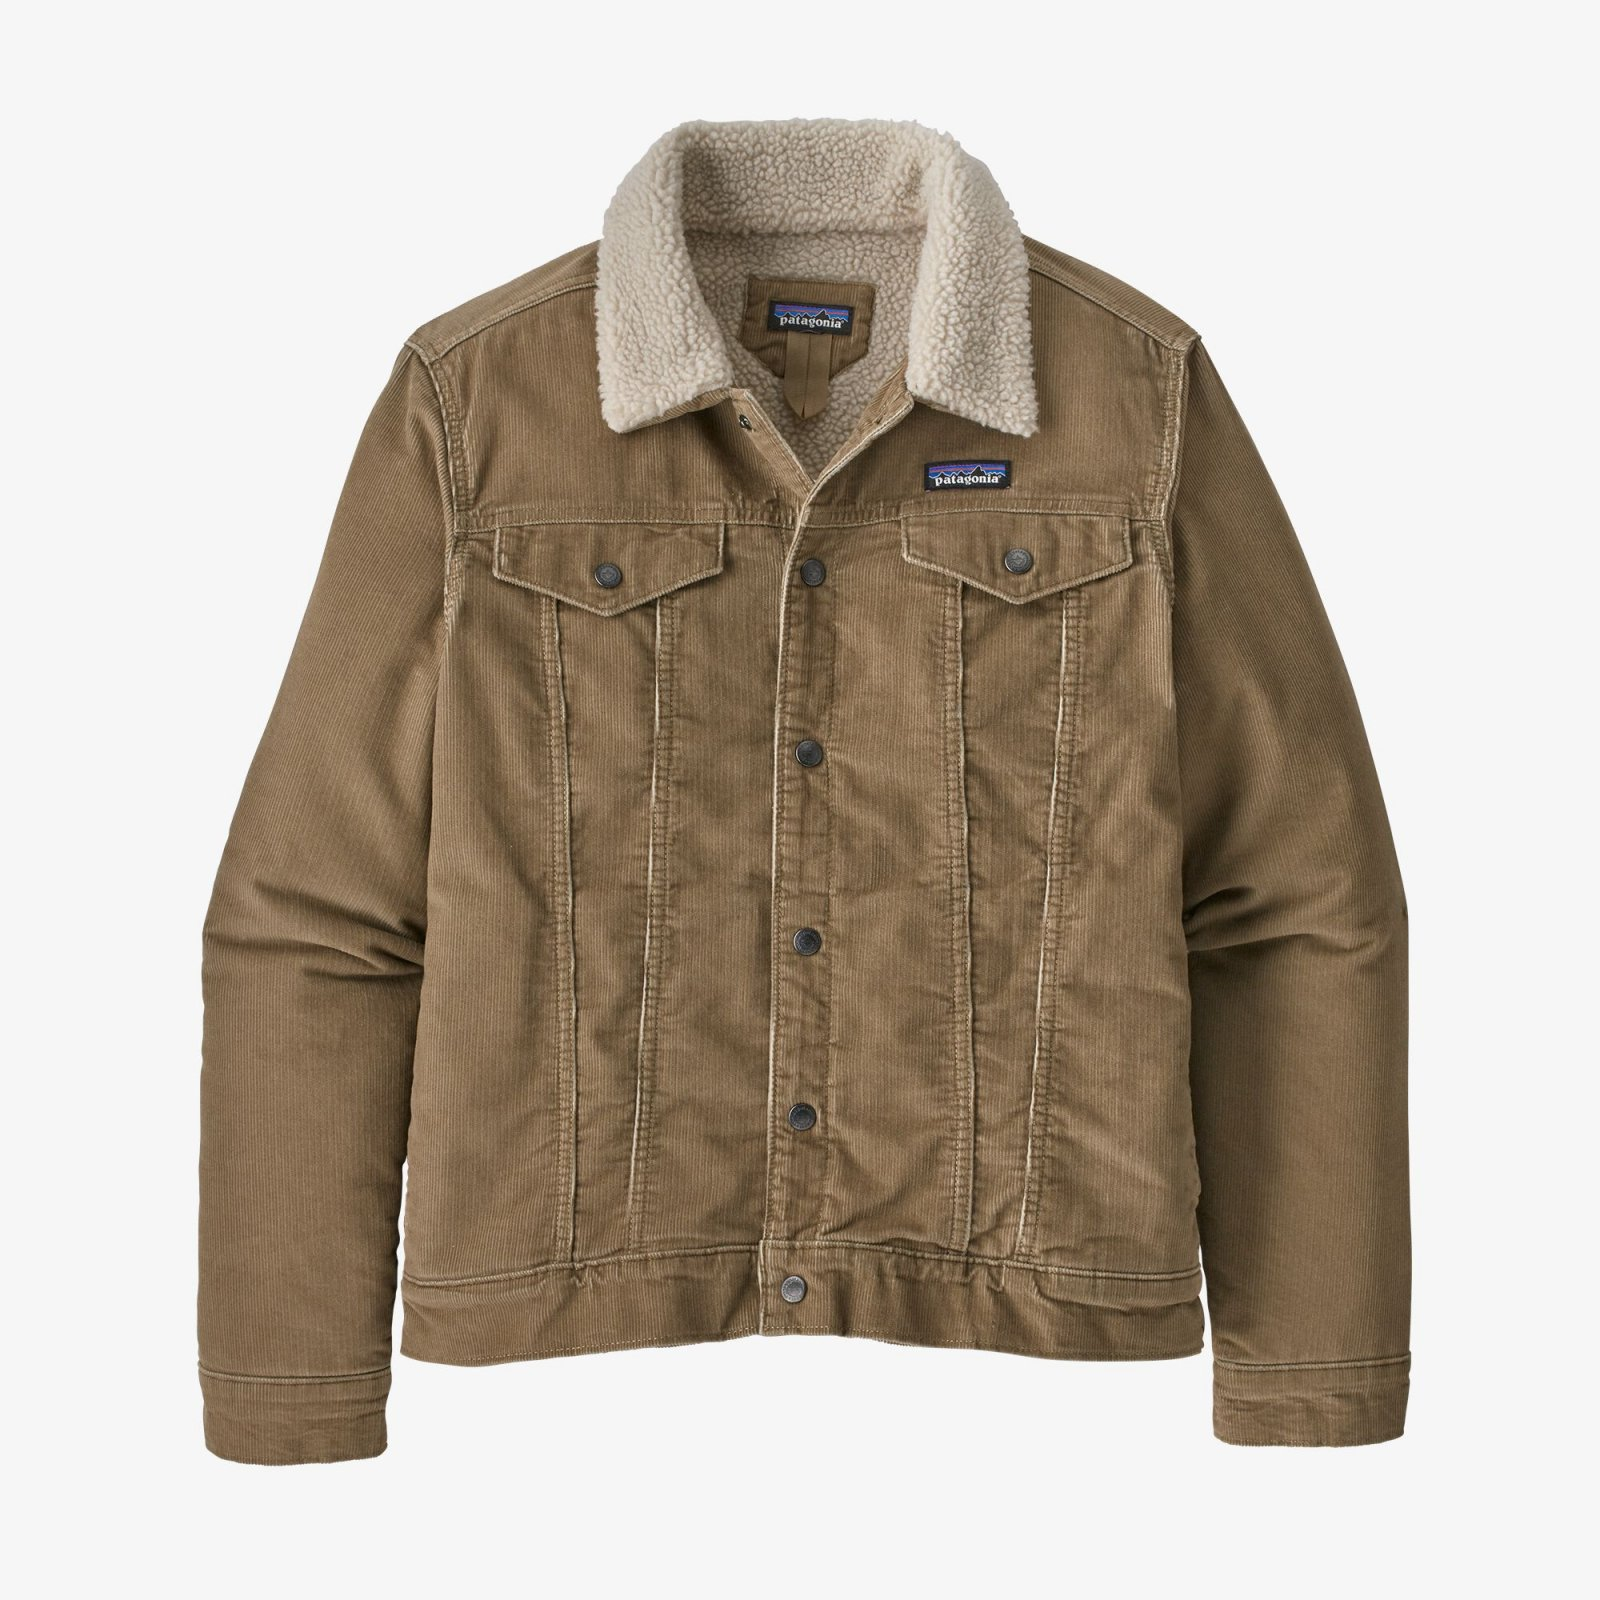 M's Patagonia Pile Lined Trucker Jacket in Mojave Khaki